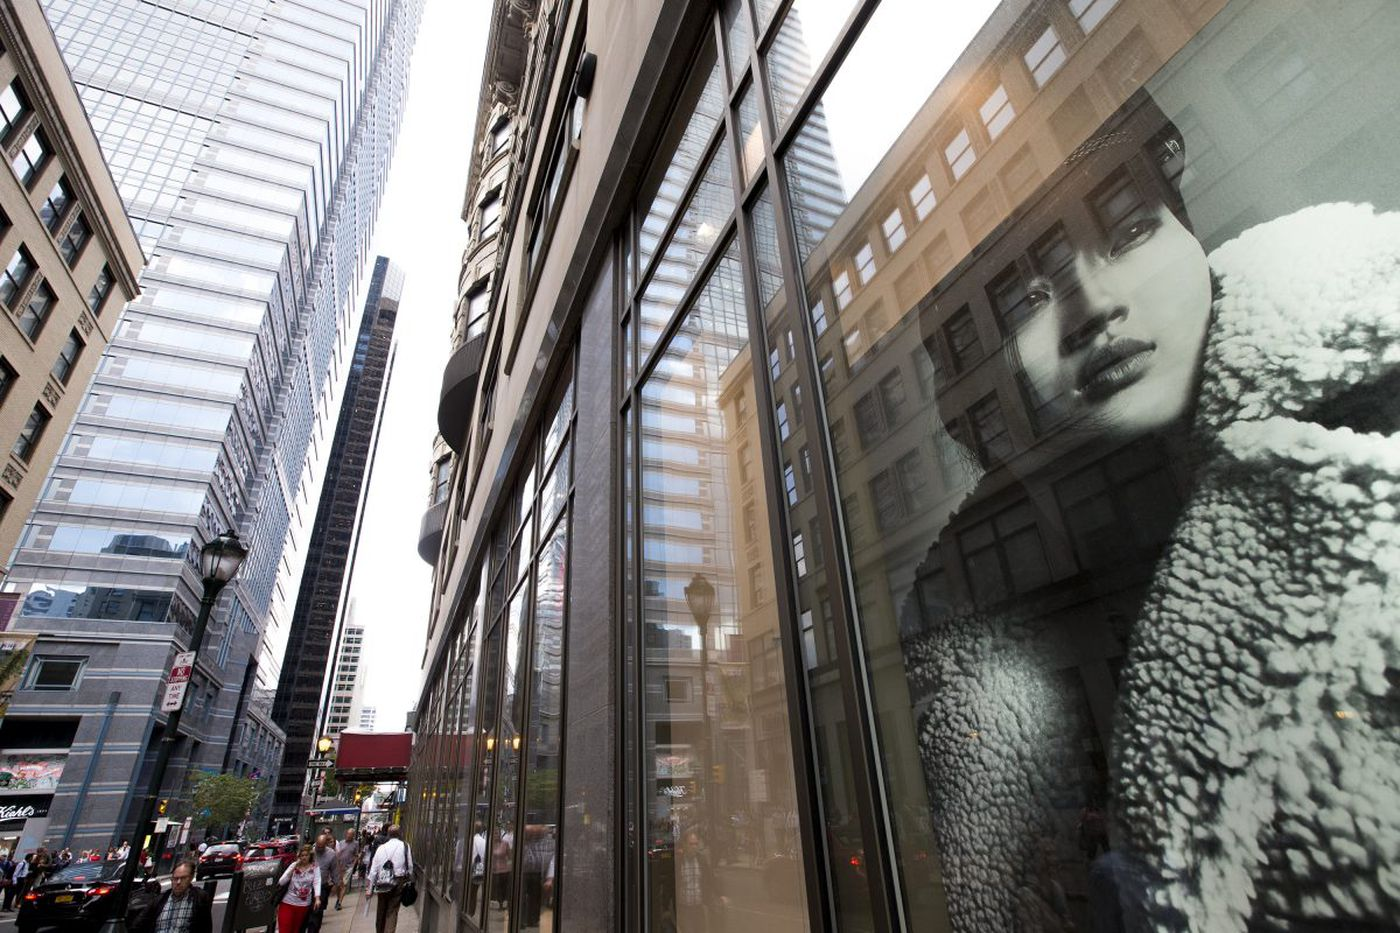 John Usdan's real estate empire in Philly rents to Urban Outfitters, Zara, and H&M